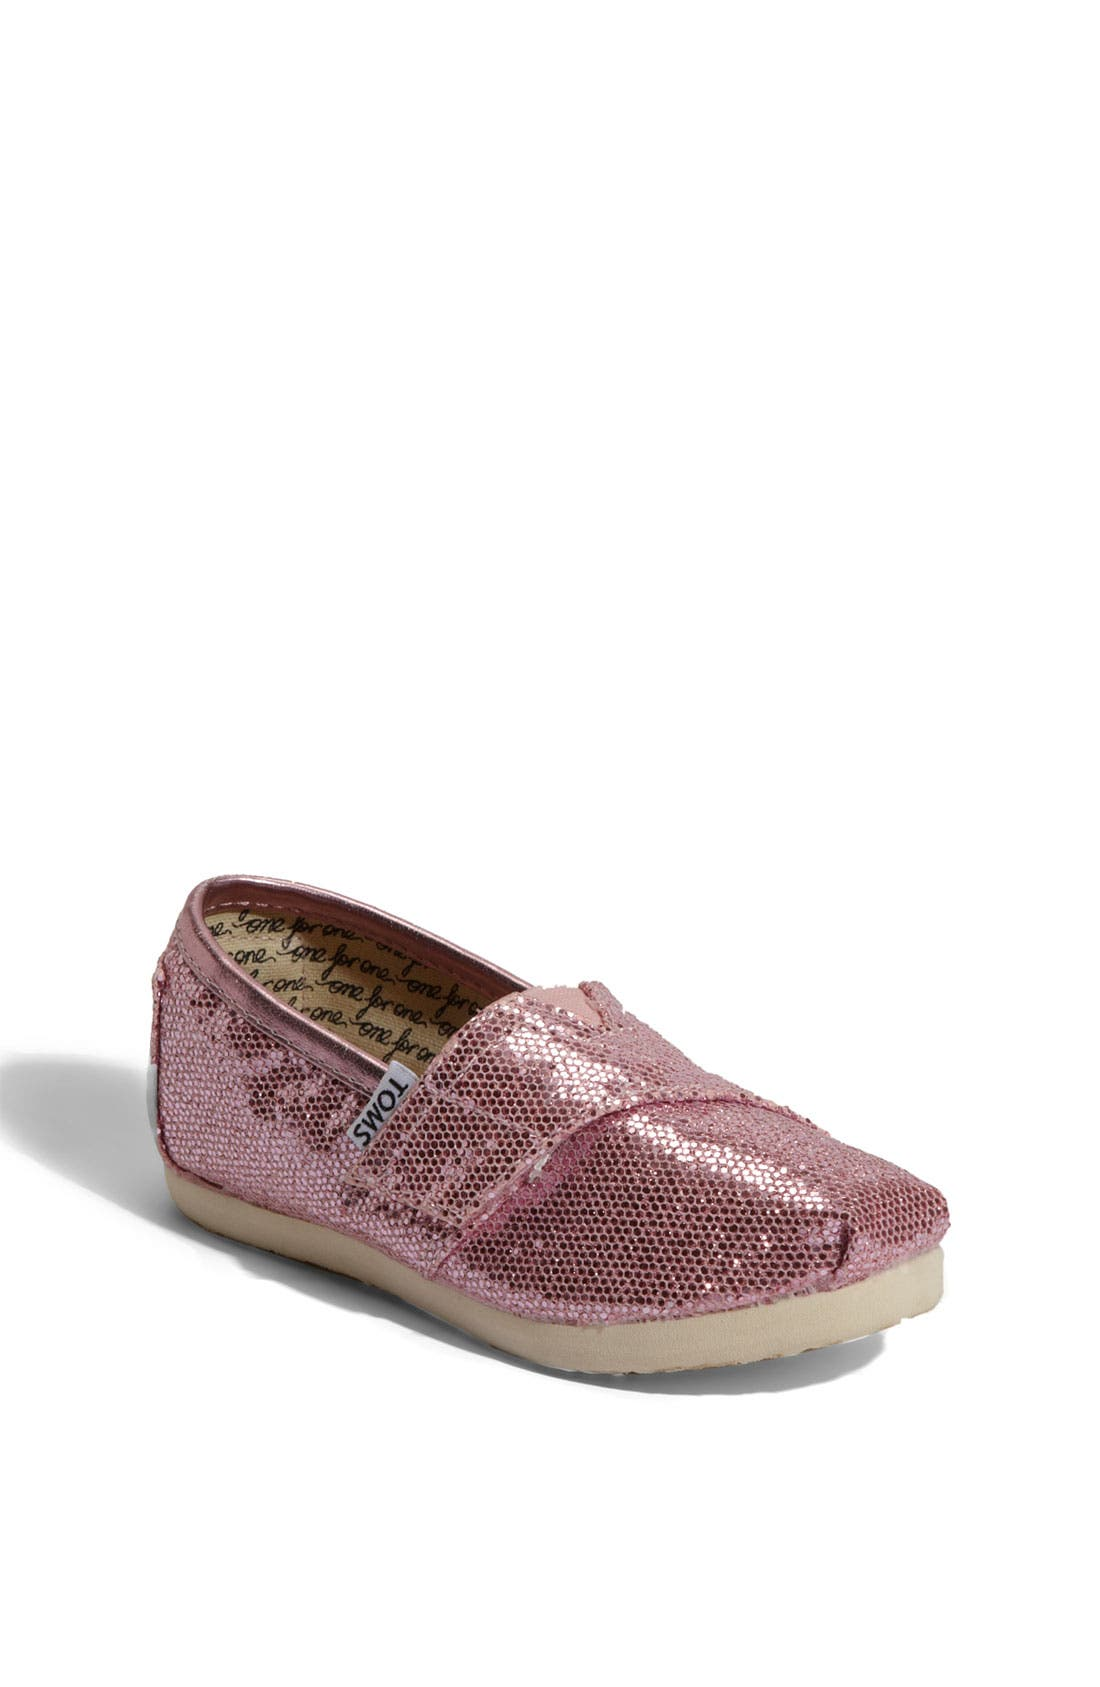 Alternate Image 1 Selected - TOMS 'Classic - Tiny' Canvas Slip-On (Toddler)